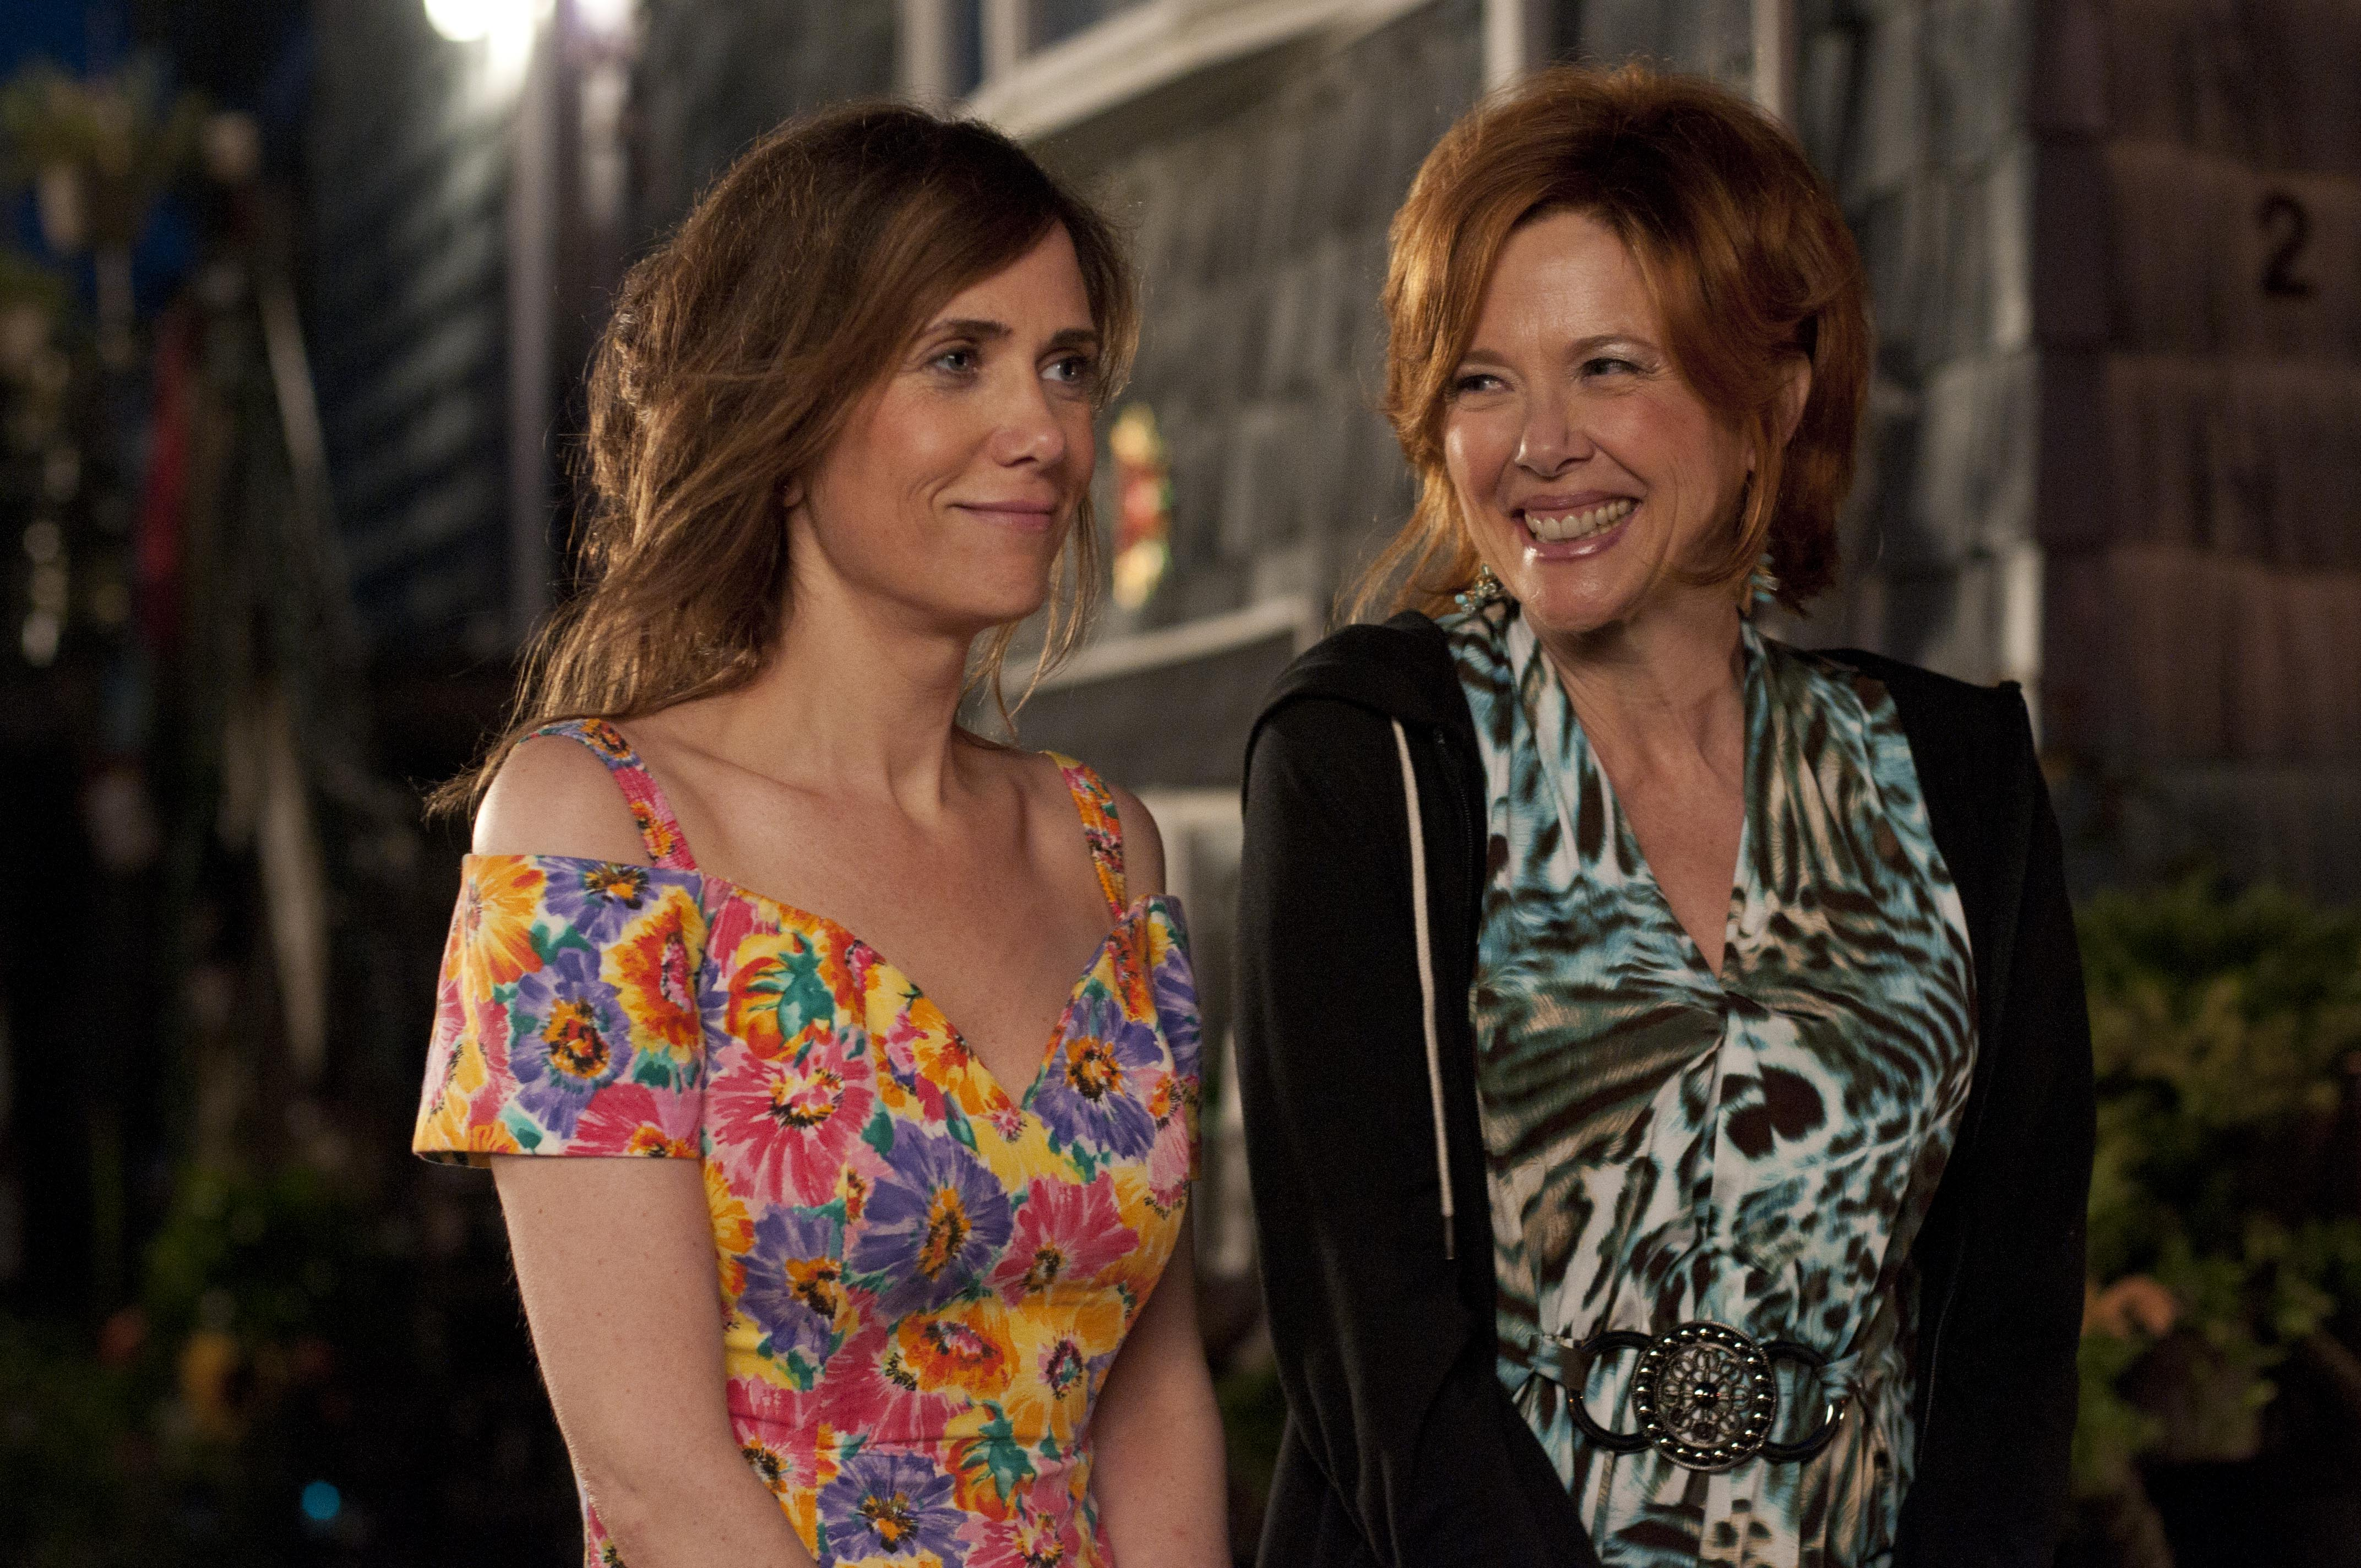 'Girl Most Likely' Kristen Wiig Reflects On Her First Big Break and Her Post 'Bridesmaids' Fame